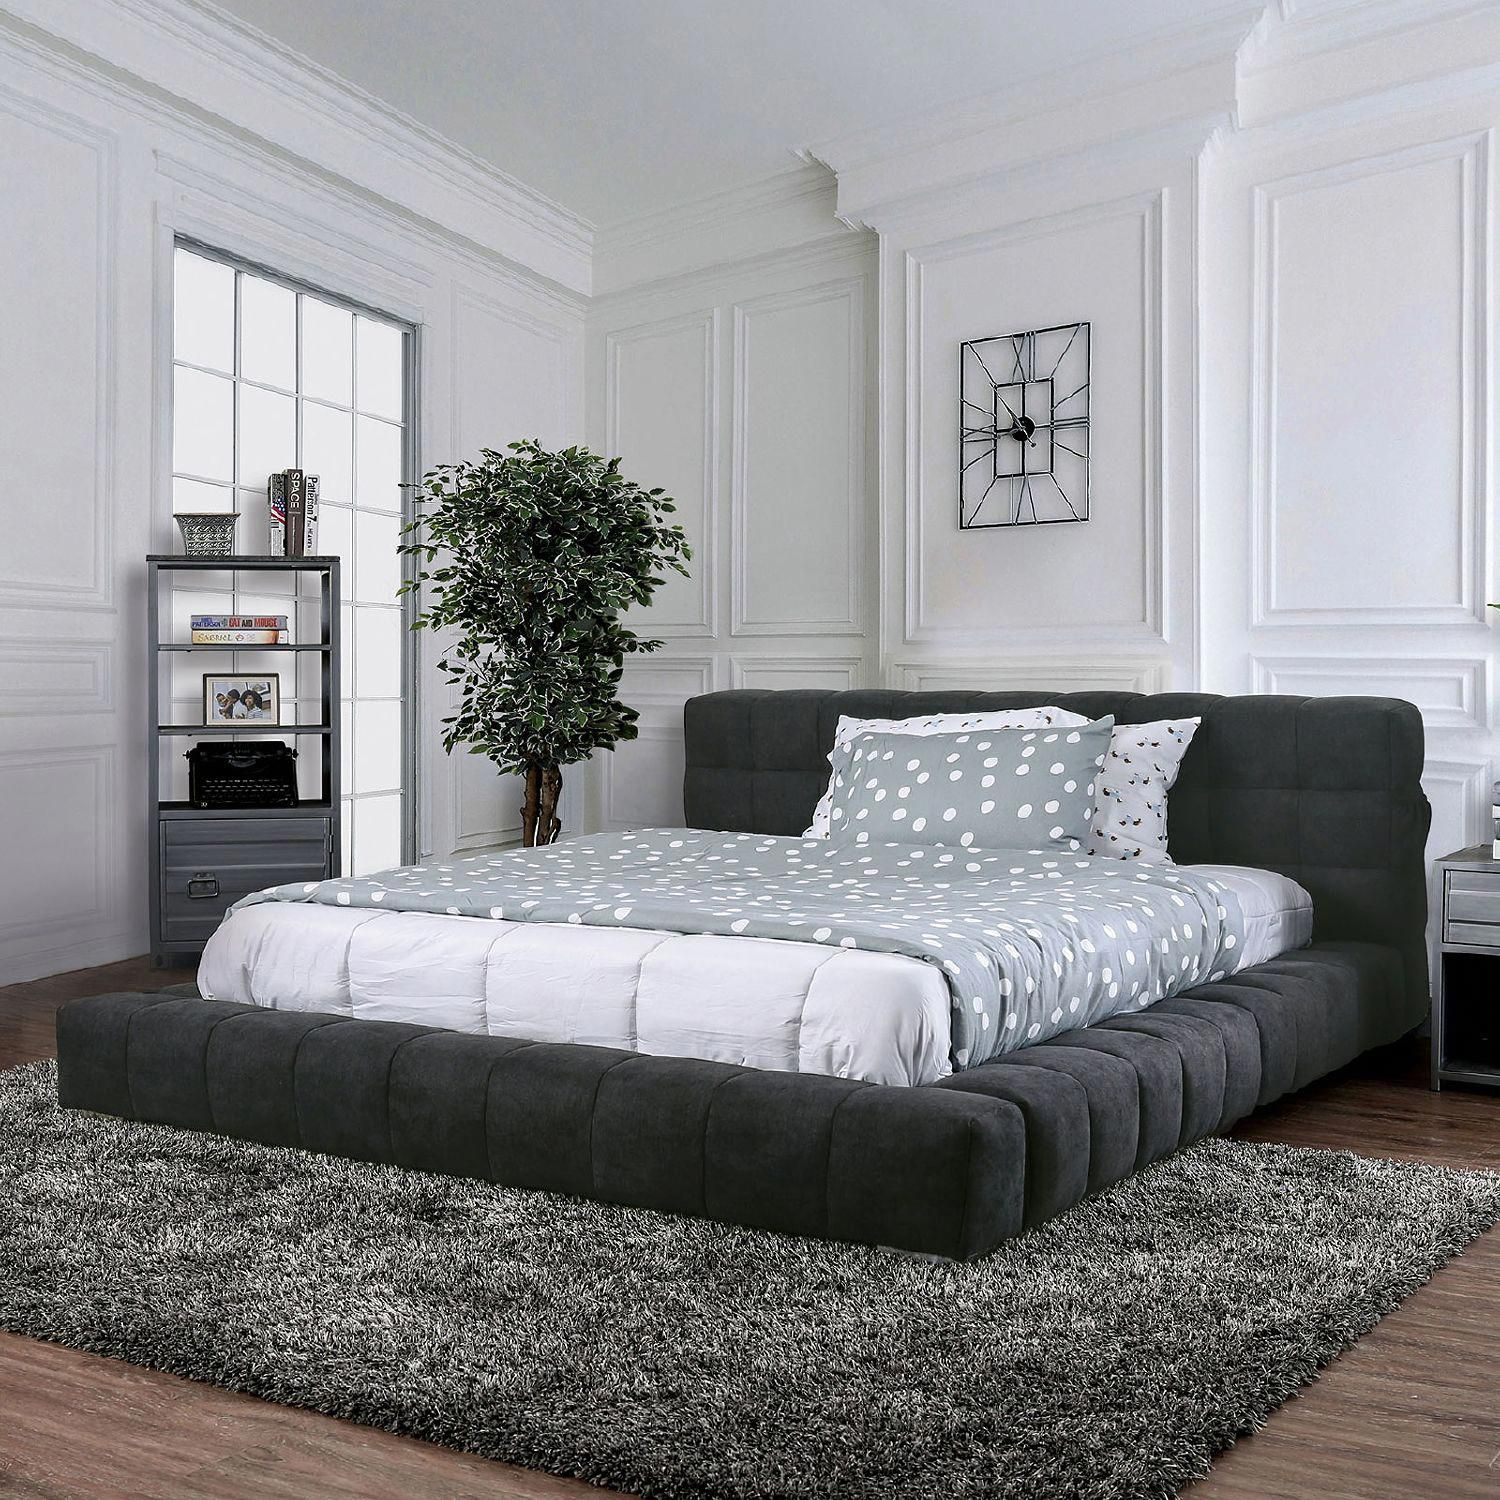 Bed Frames Queen Size With Wheels in 2020 King sized